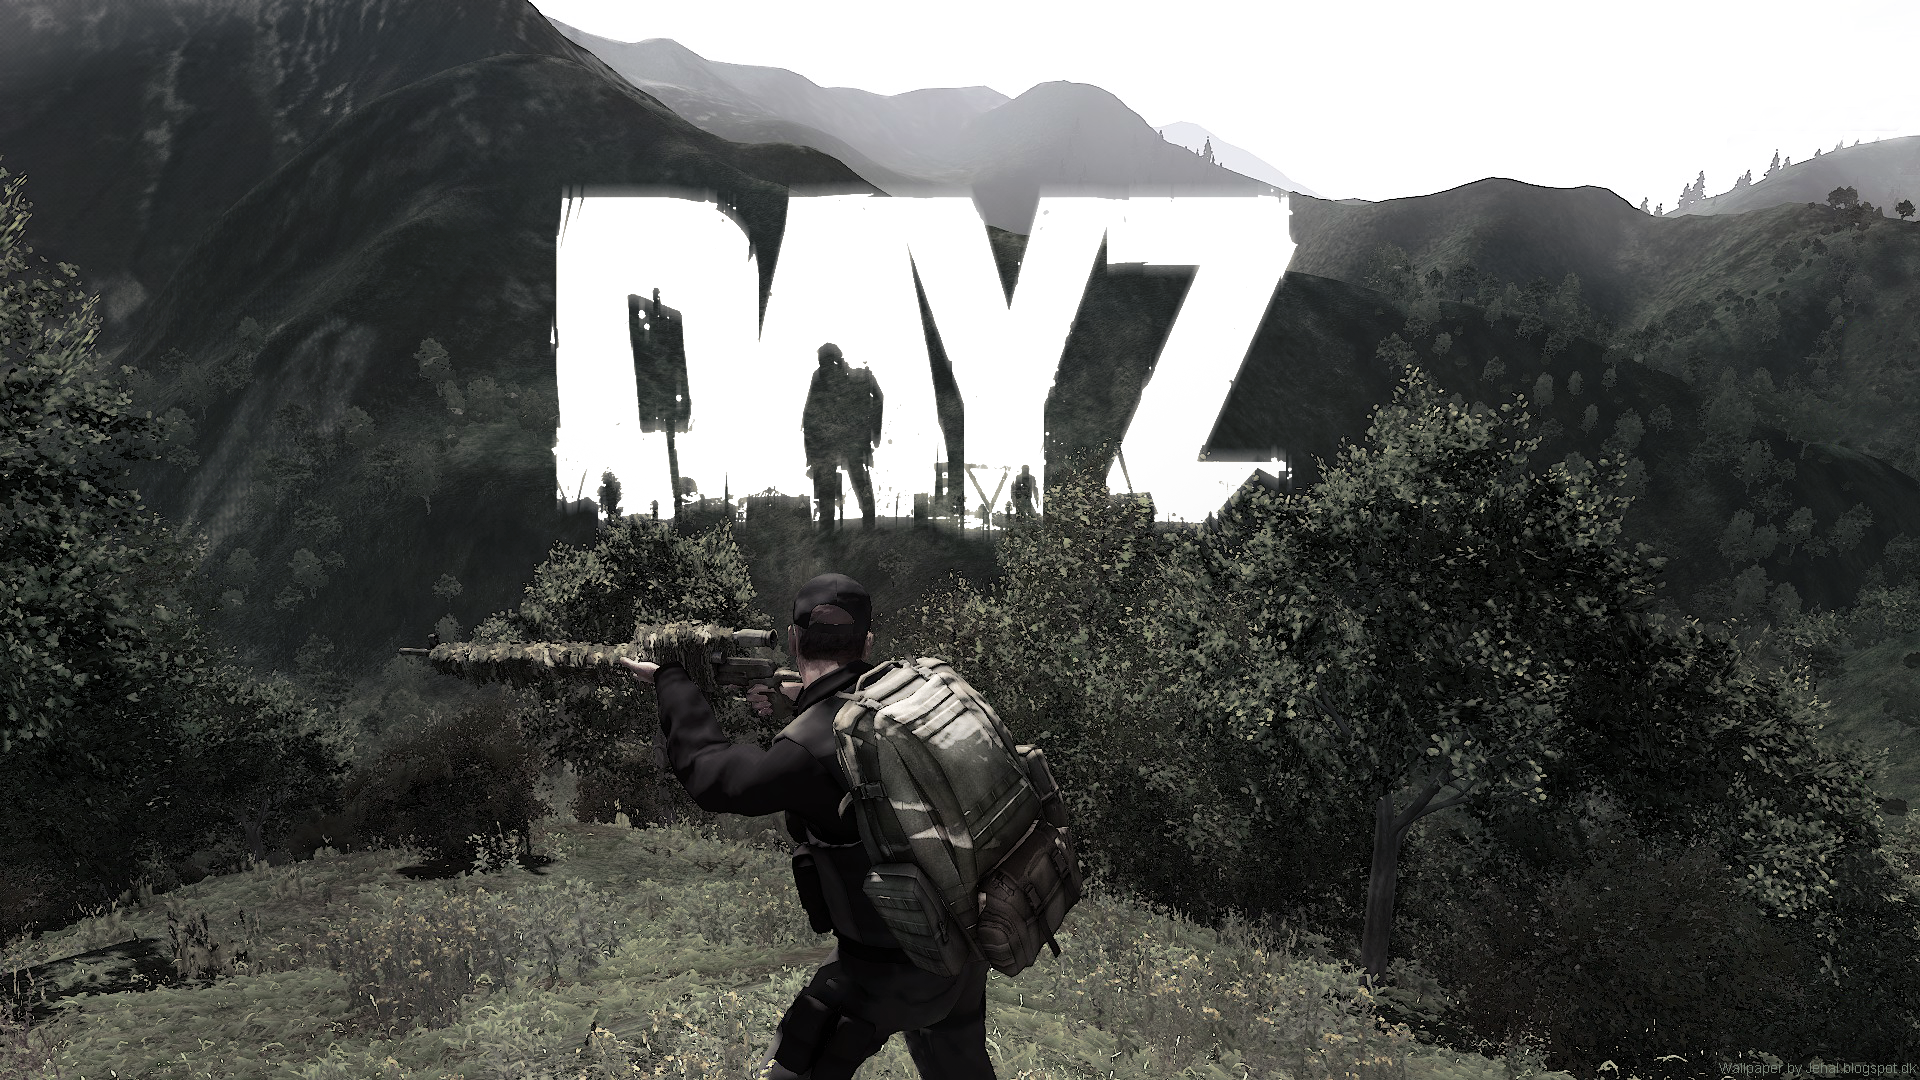 New DayZ Backgrounds, View #38779271 DayZ Wallpapers